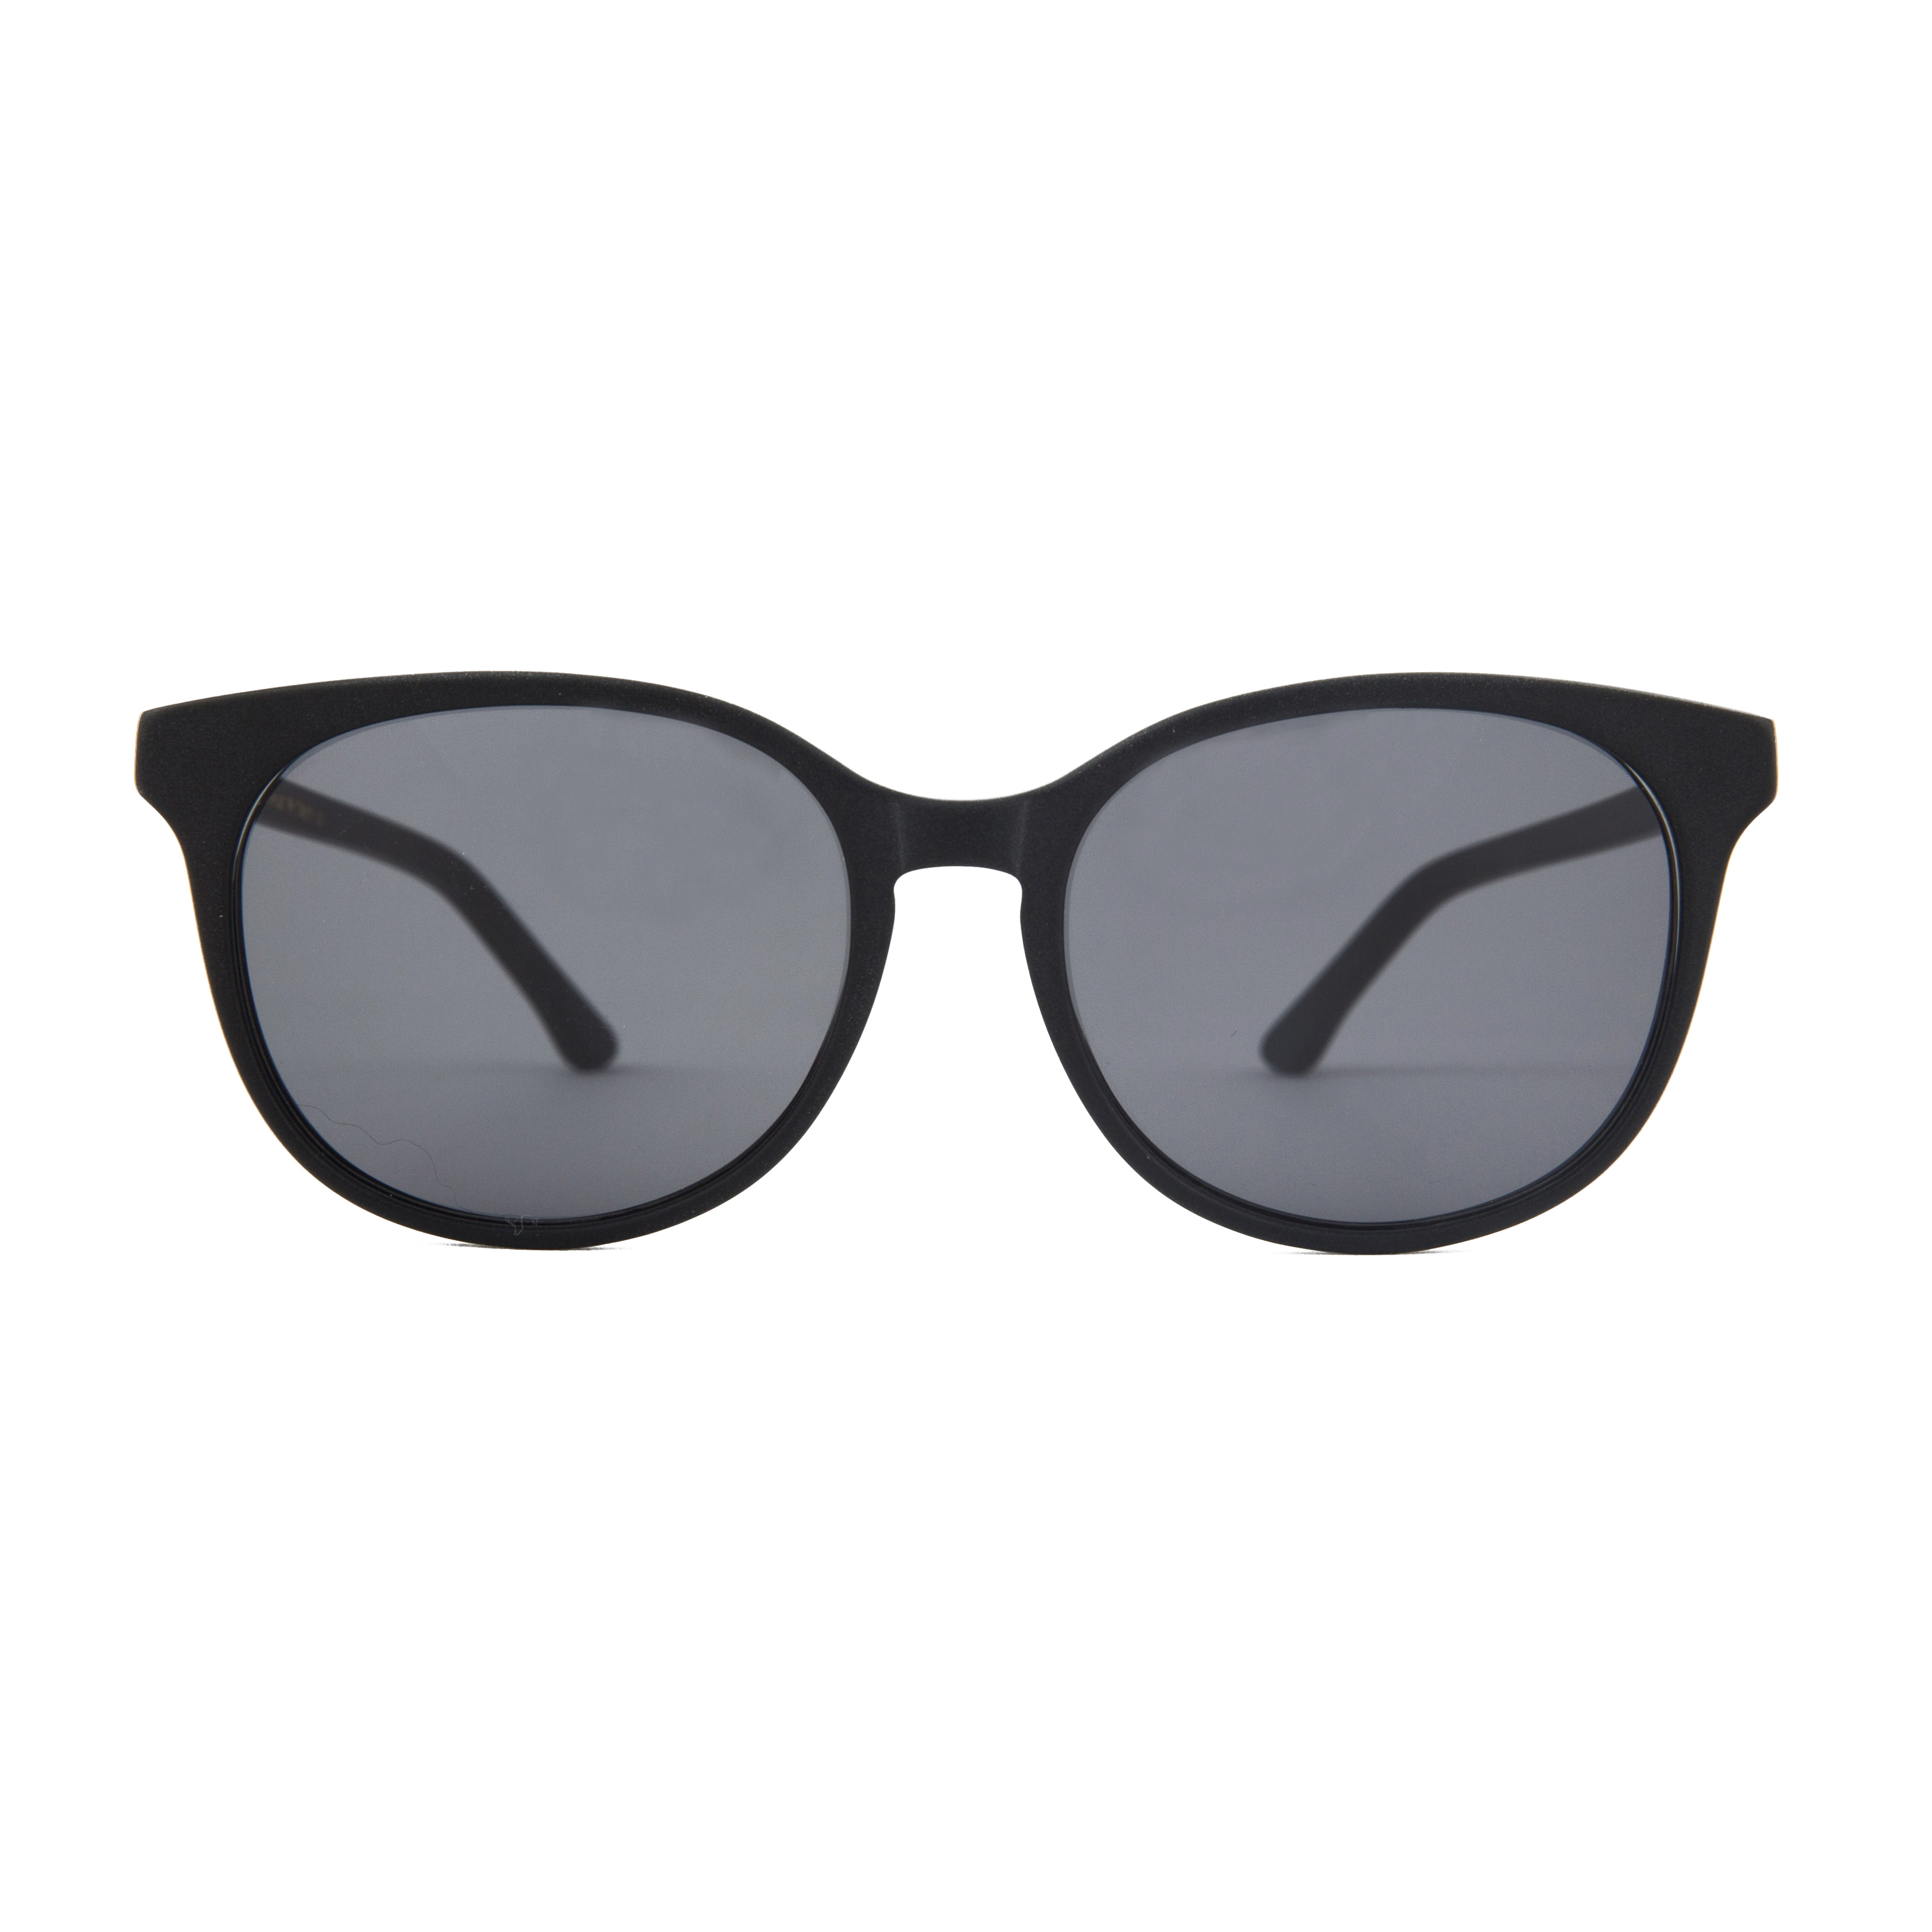 Lead + Ball, Campania Editions sunglasses, was £75 now £37.50